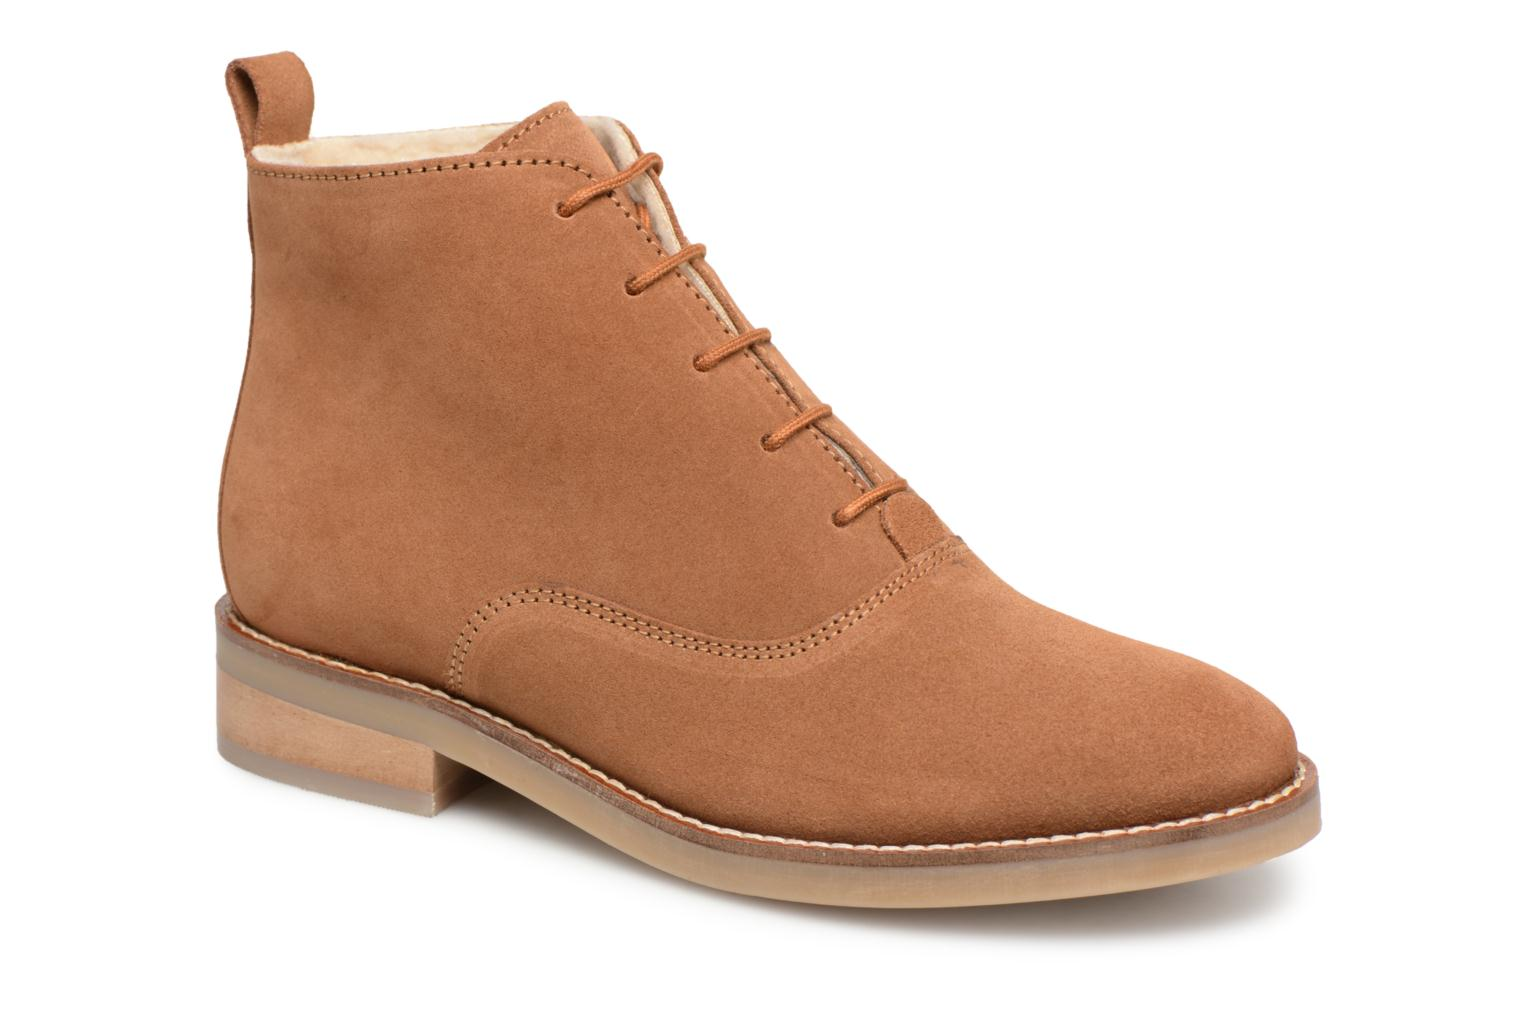 5c43a5407d7e6 BOOTS LACETS FOUREE - Chaussures